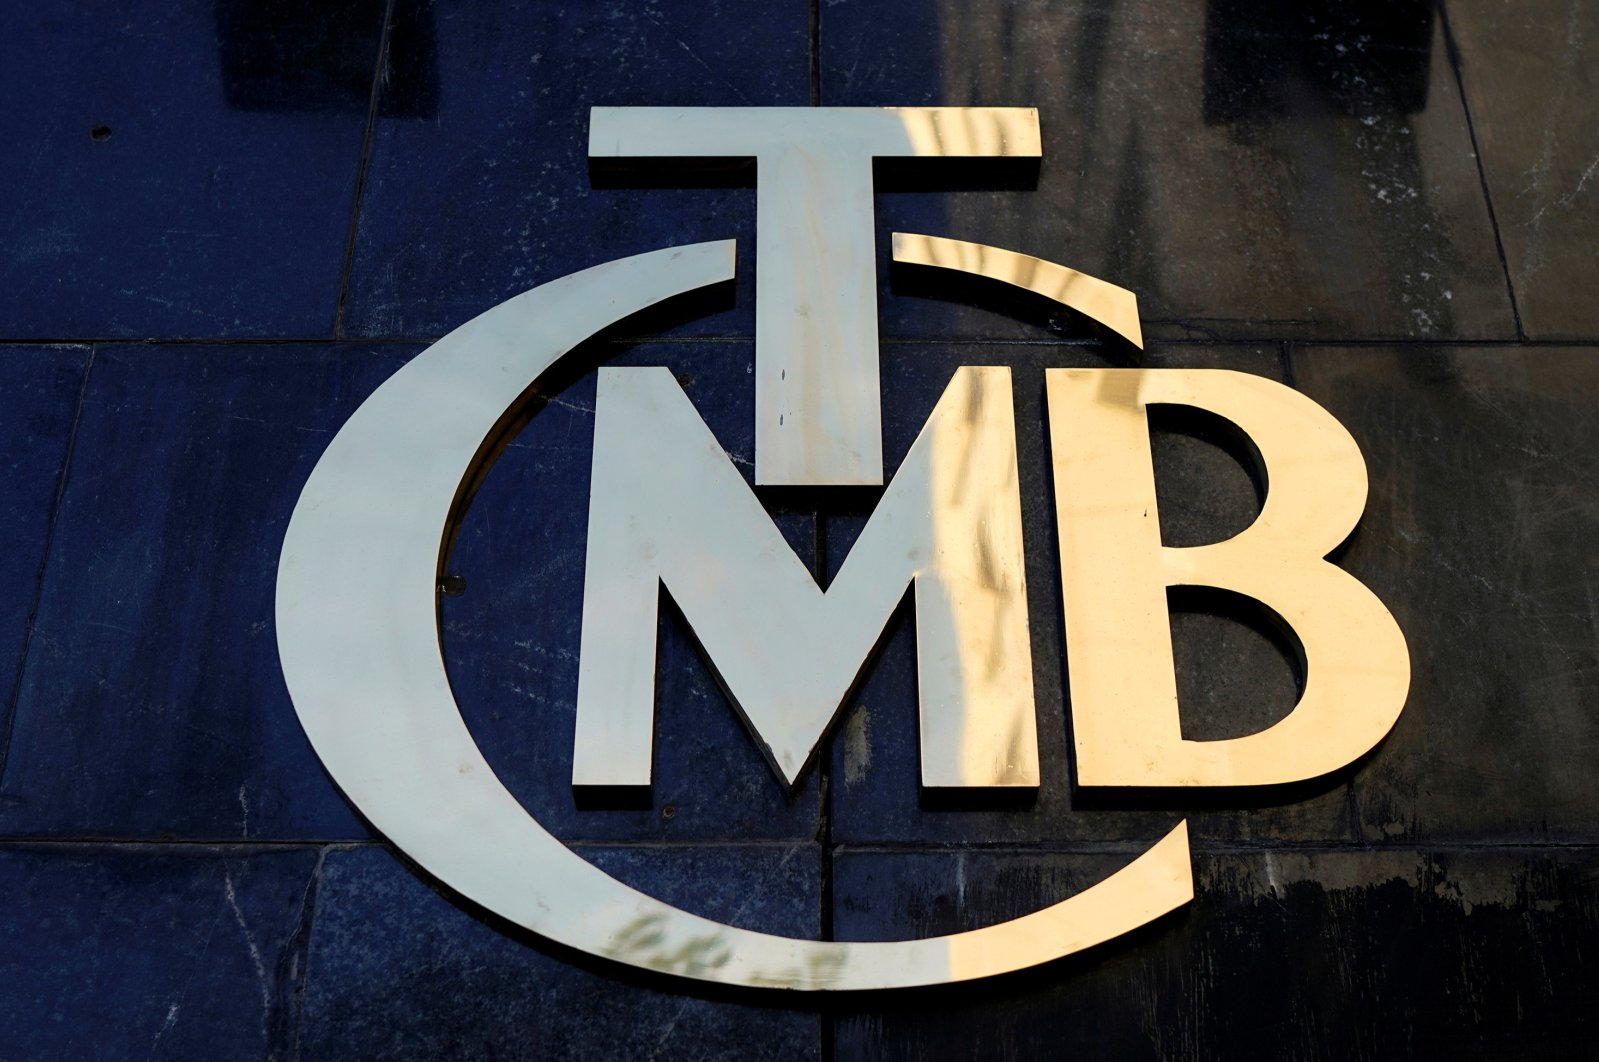 A logo of the Central Bank of the Republic of Turkey (CBRT) is pictured at the entrance of the bank's headquarters in the capital Ankara, April 19, 2015. (Reuters Photo)